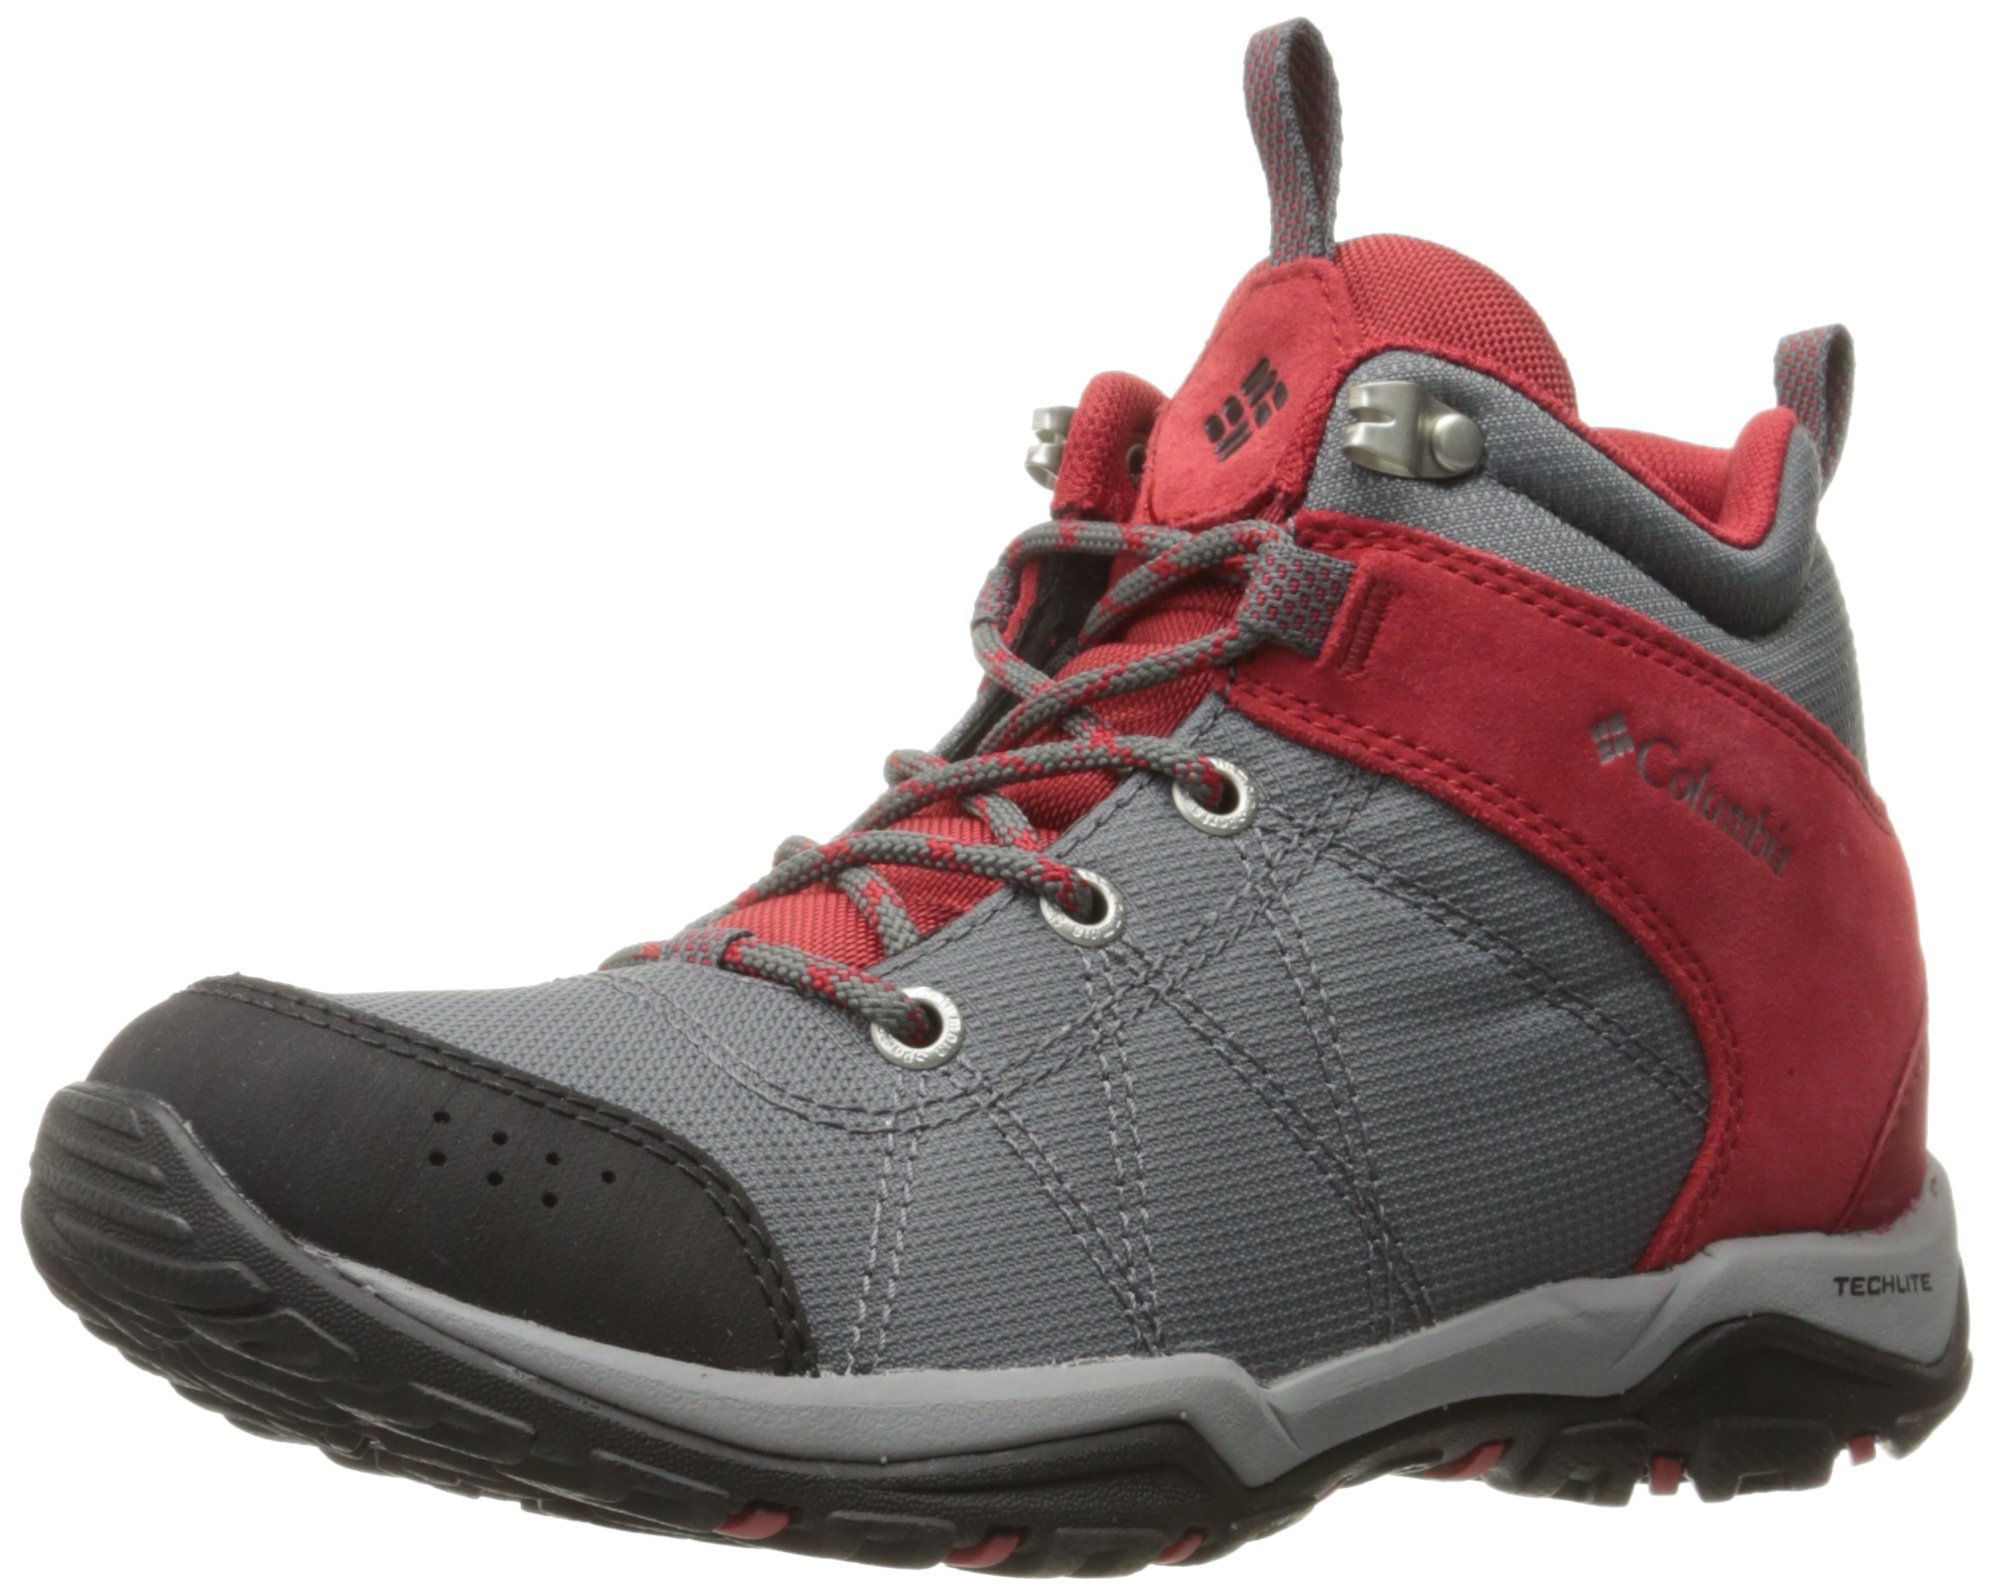 Columbia Women's Fire Venture Mid Textile Hiking Boot, Tin Grey Steel/Rocket, 8 B US